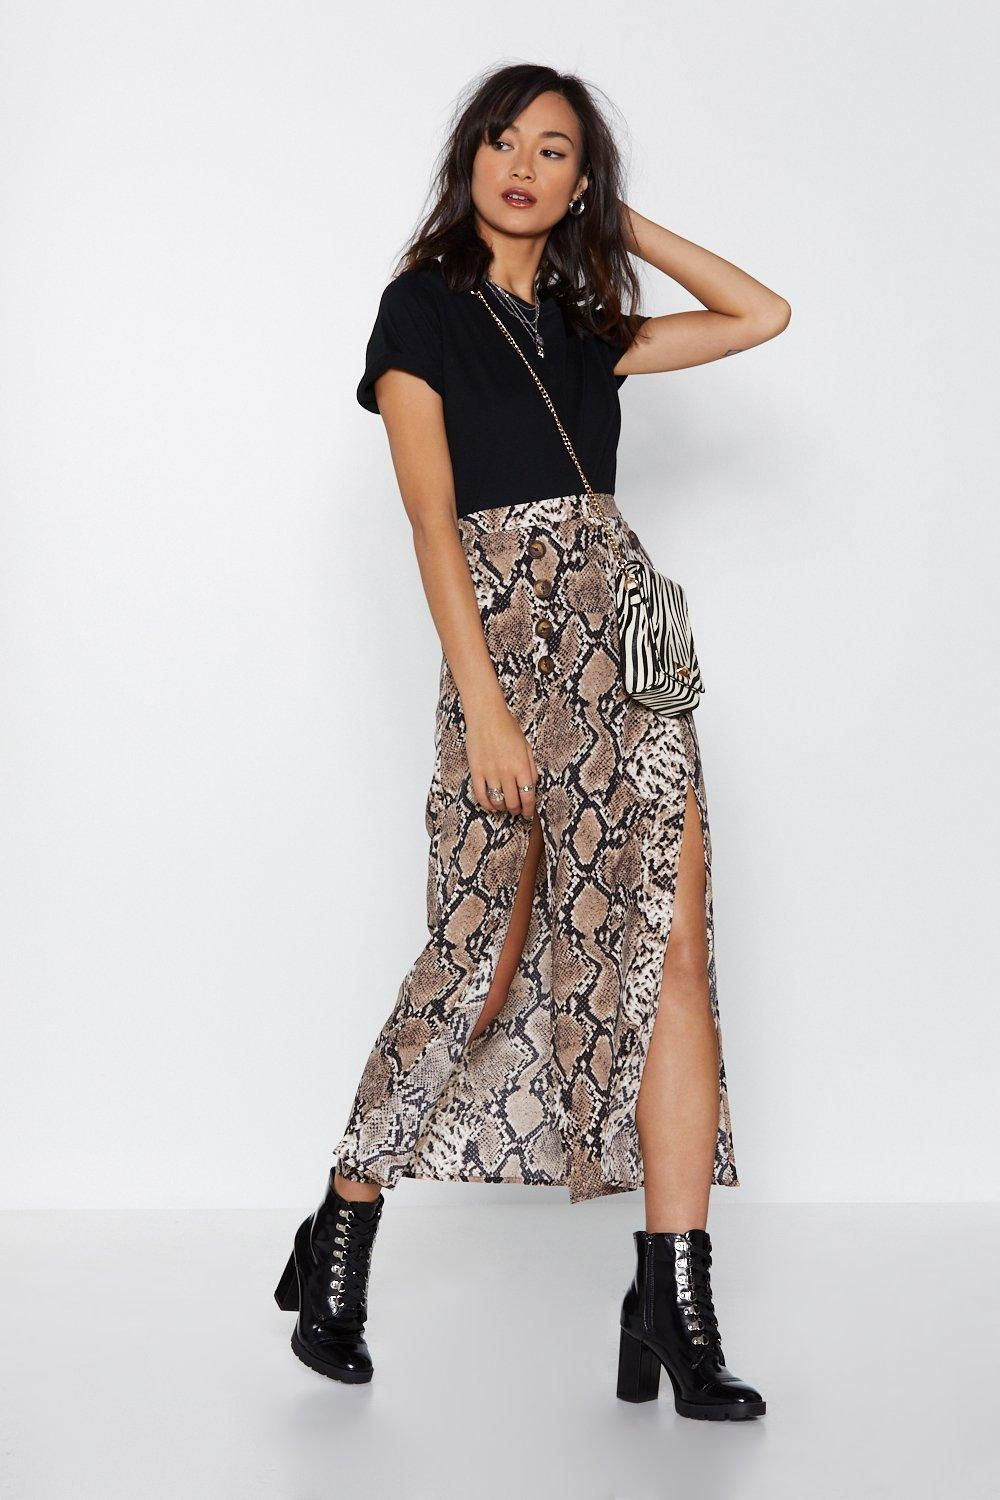 fc953dc262 This skirt features a maxi, high-waisted silhouette, slits at front, and  snake print.